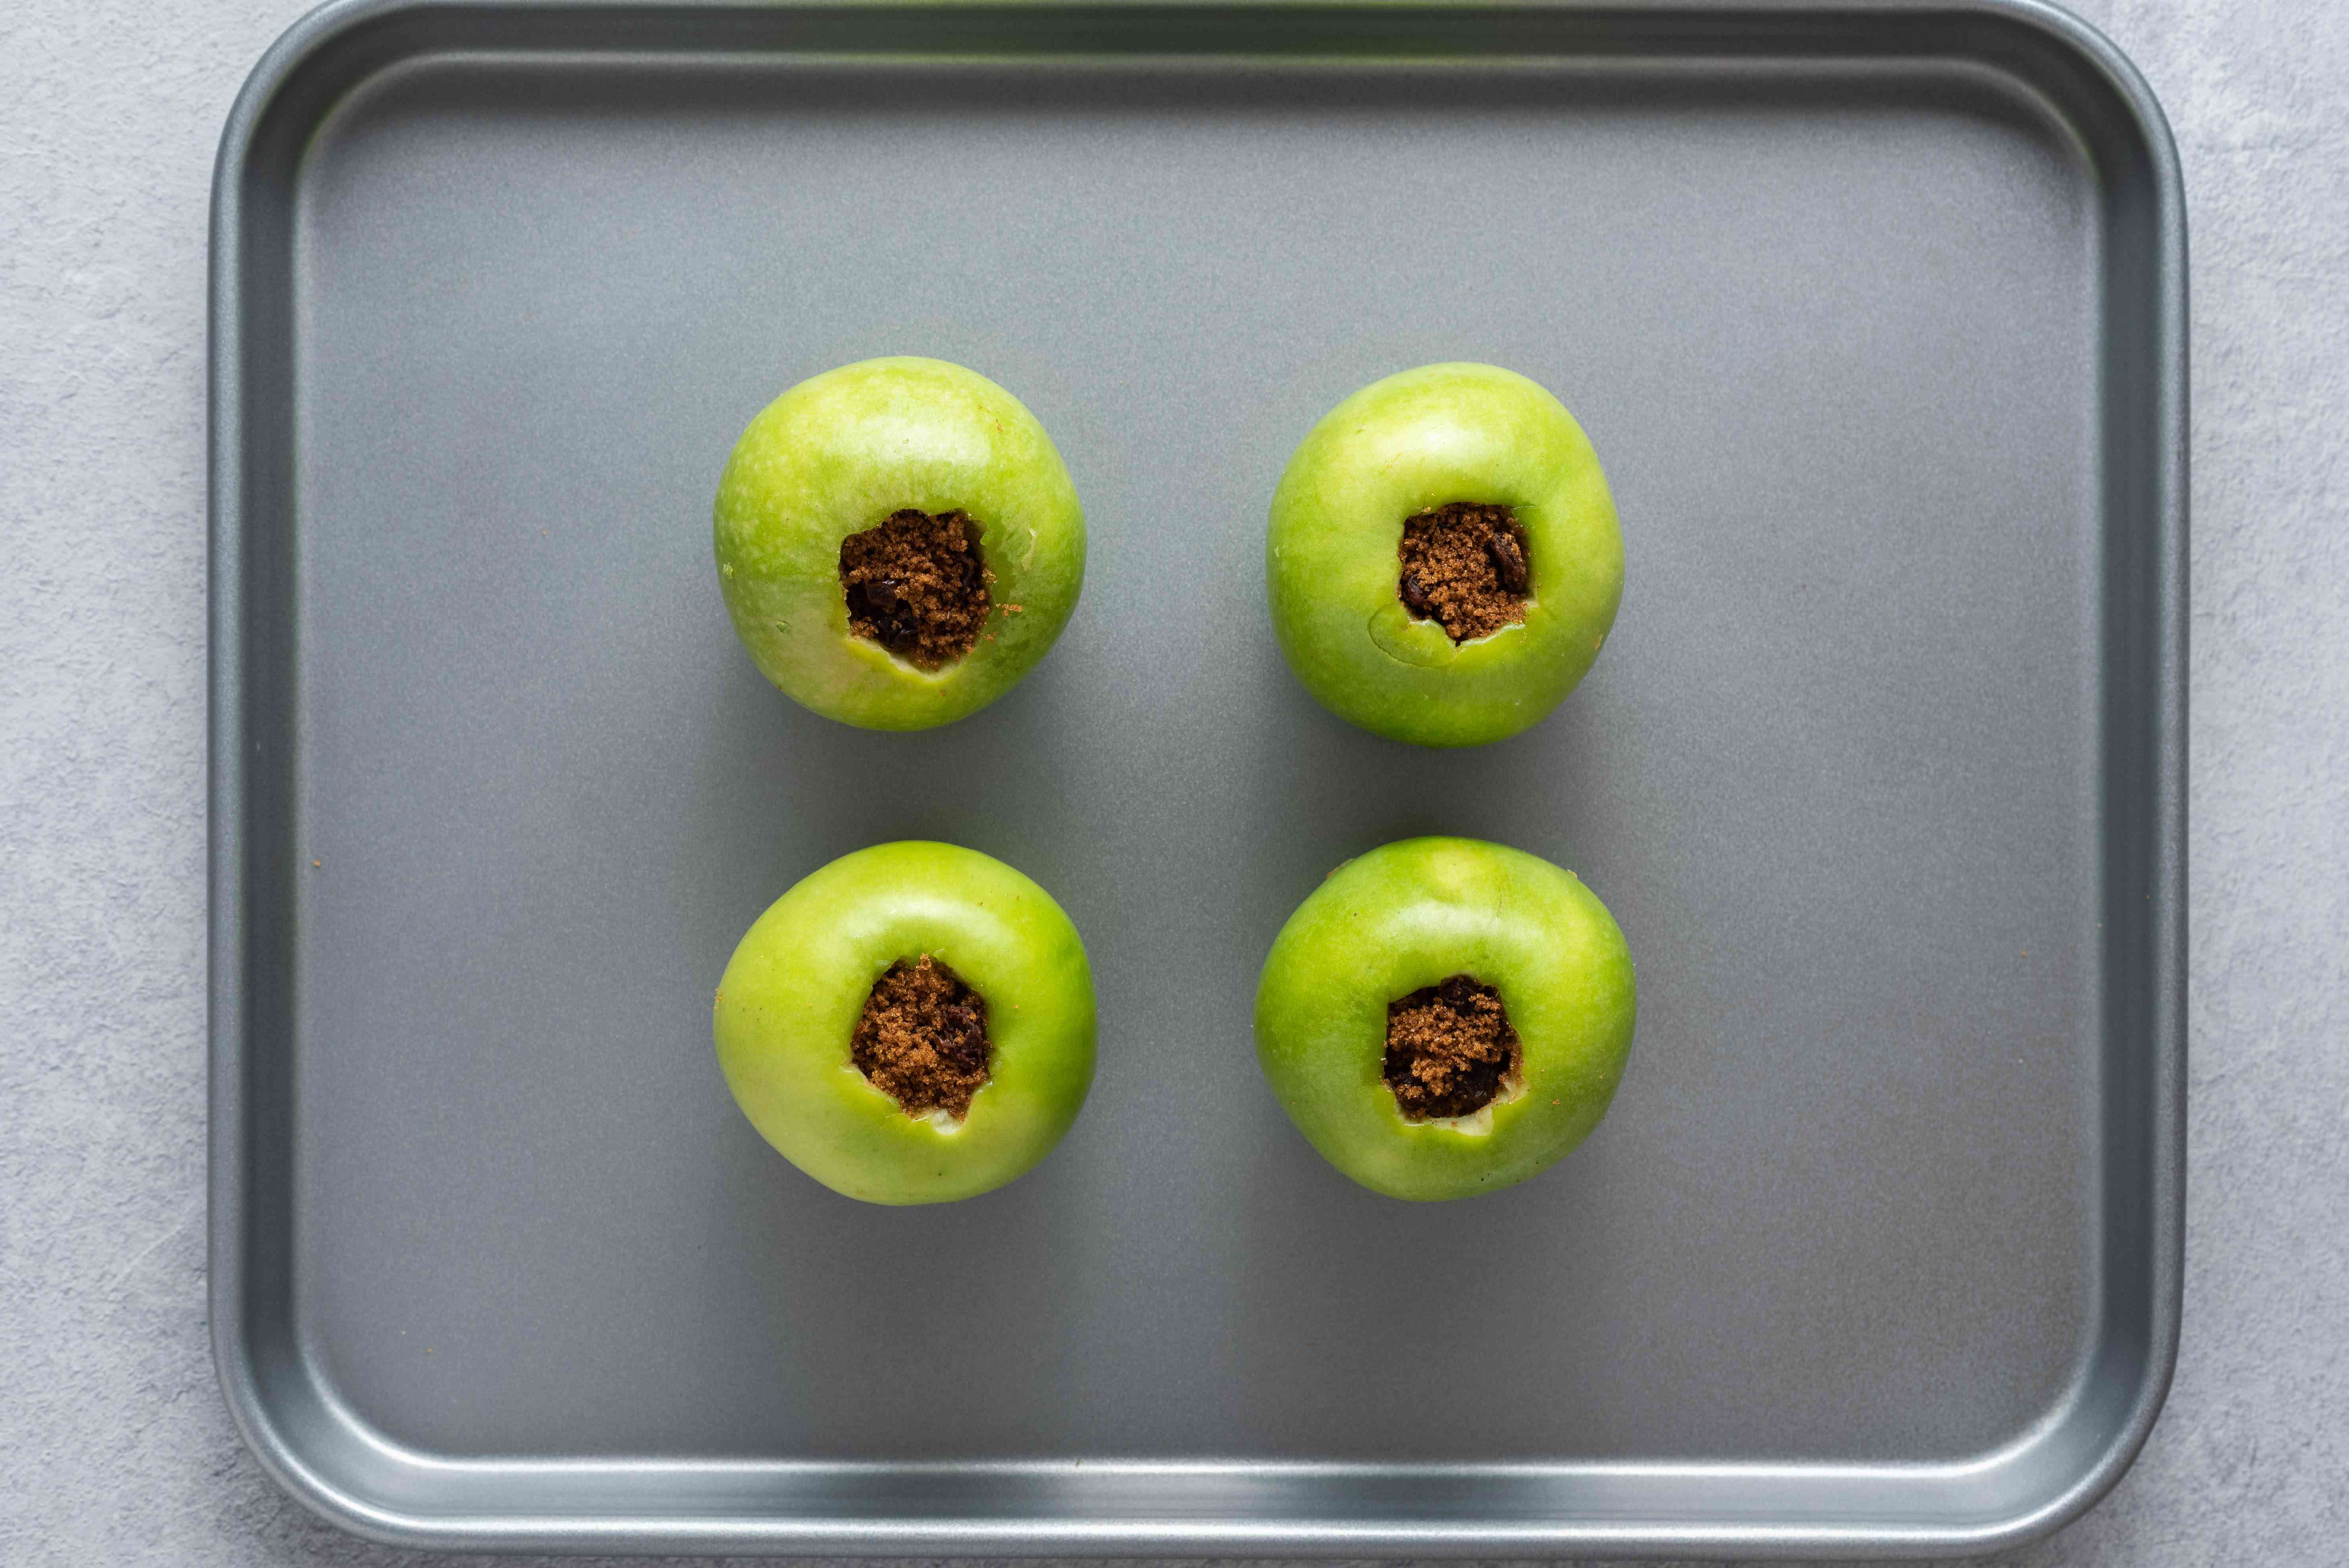 Apples with a sugar and raisin mixture inside